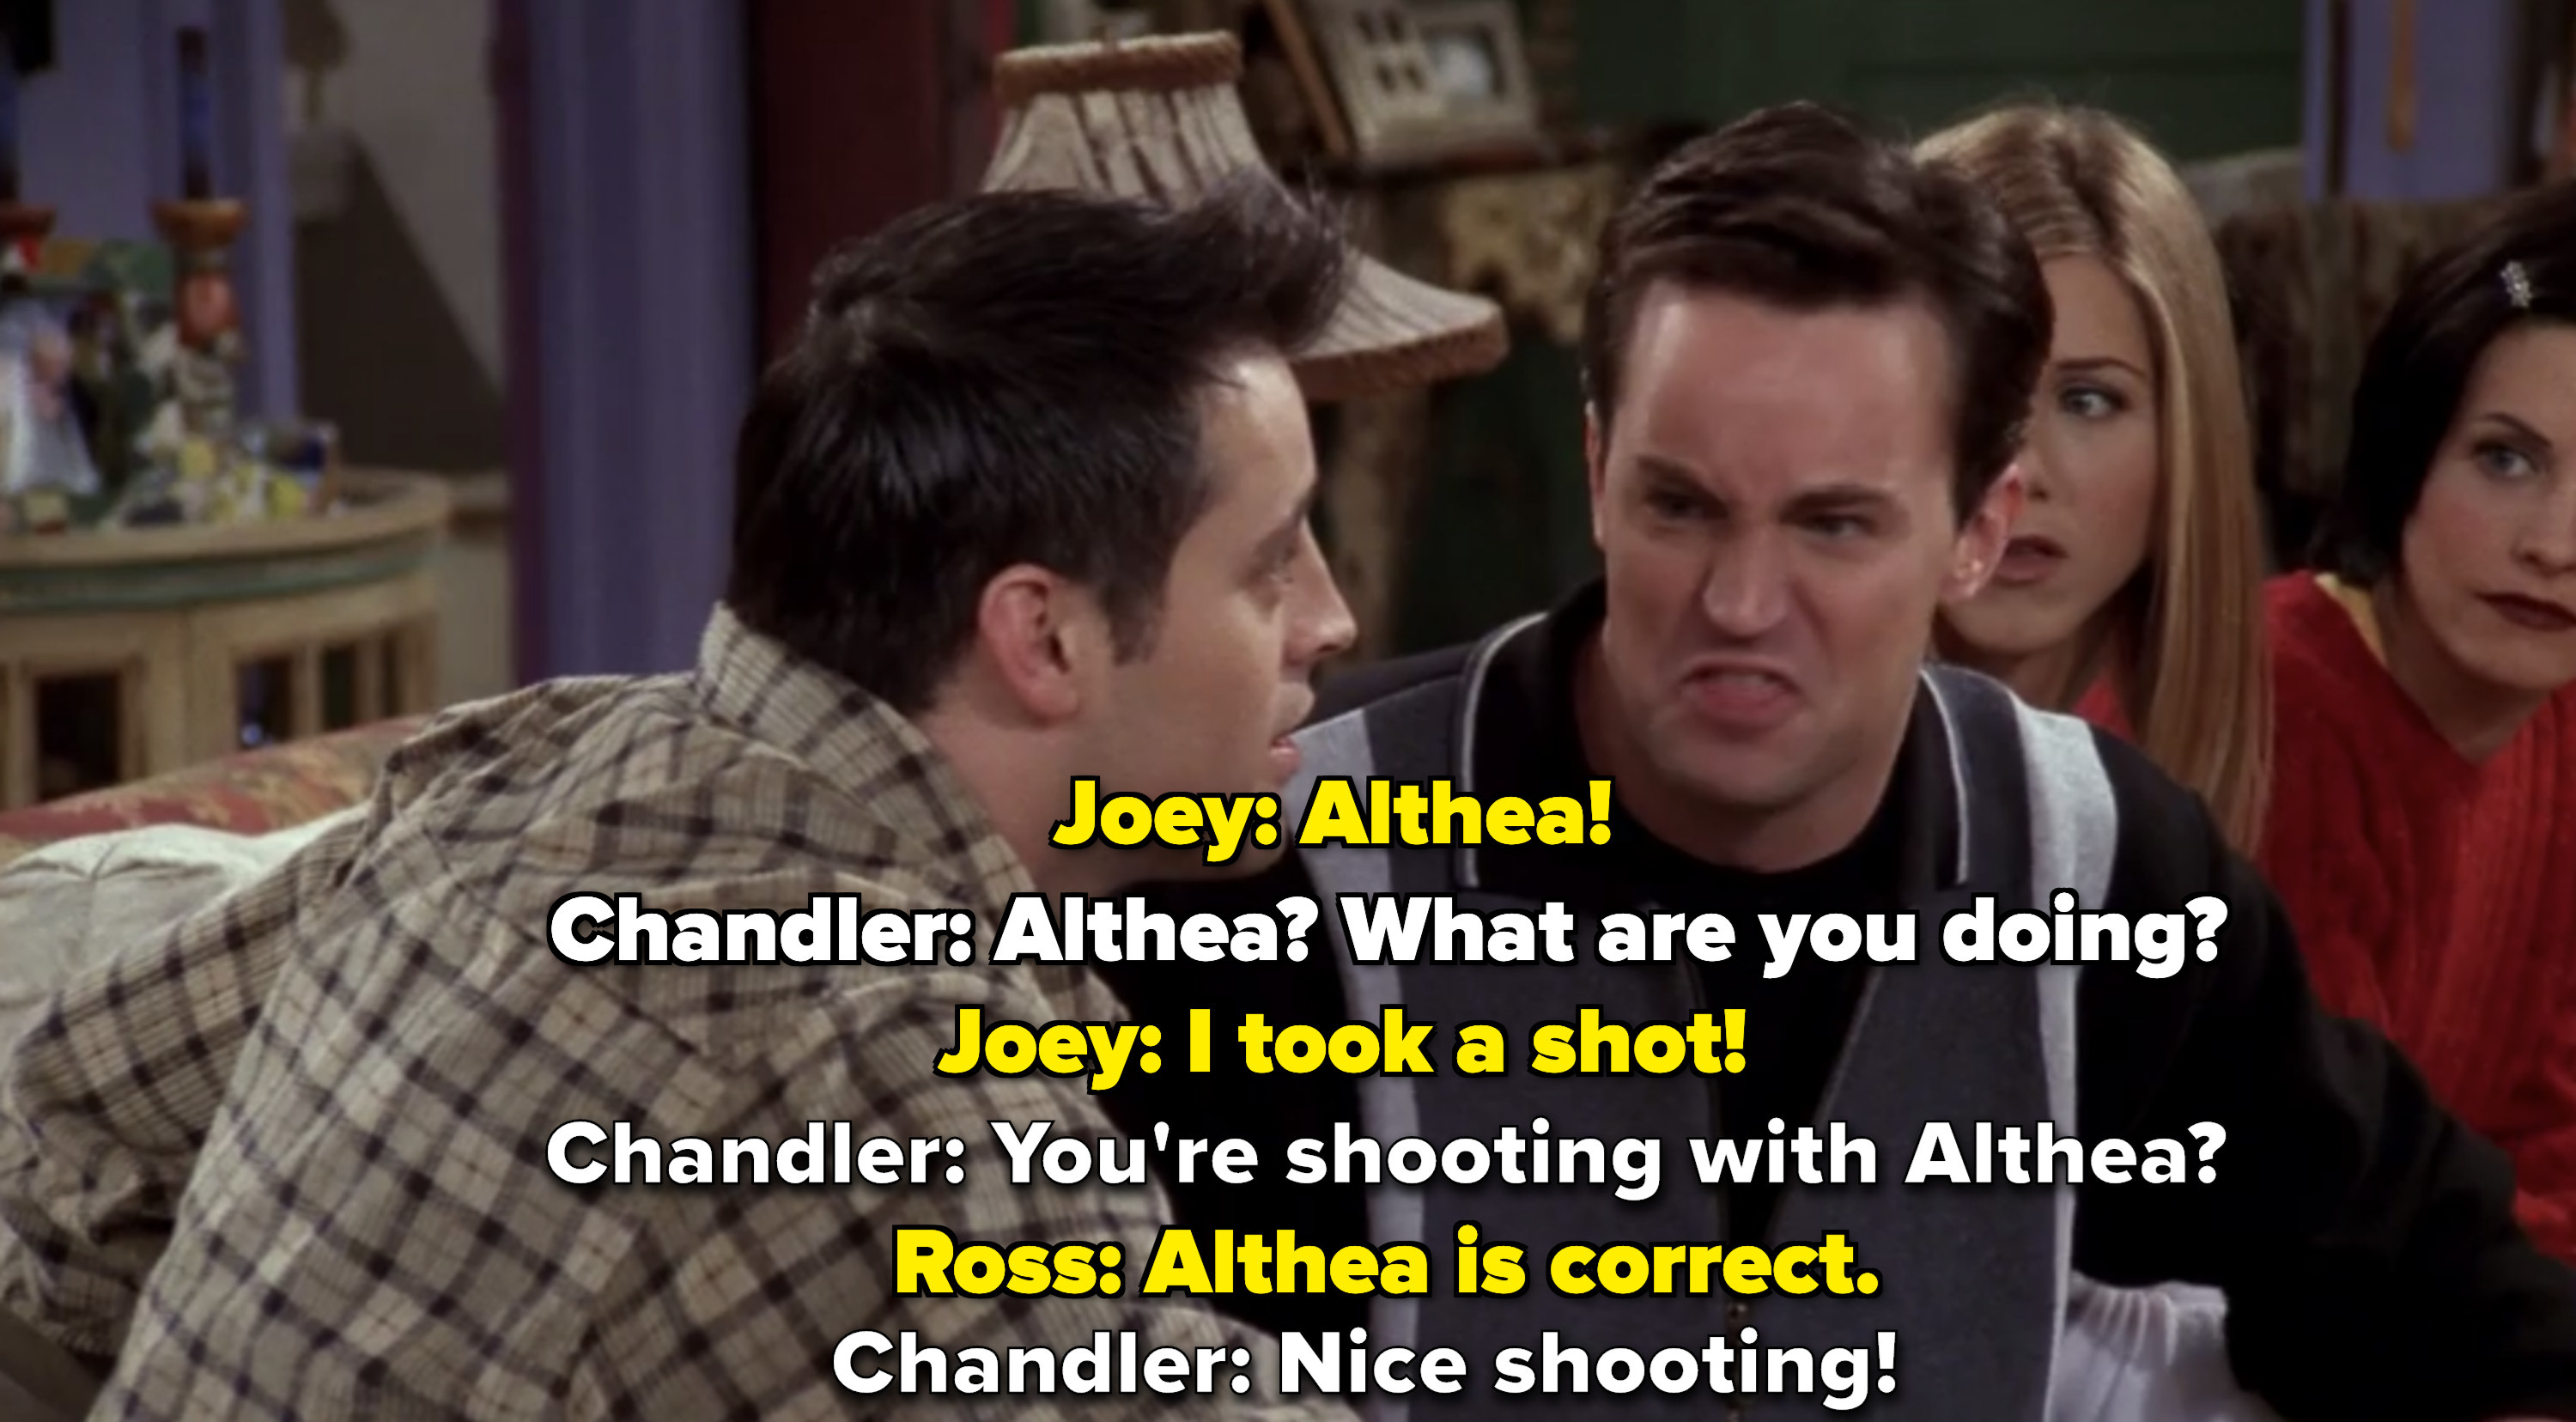 Joey and Chandler banter about the fact that Joey guessed Althea.